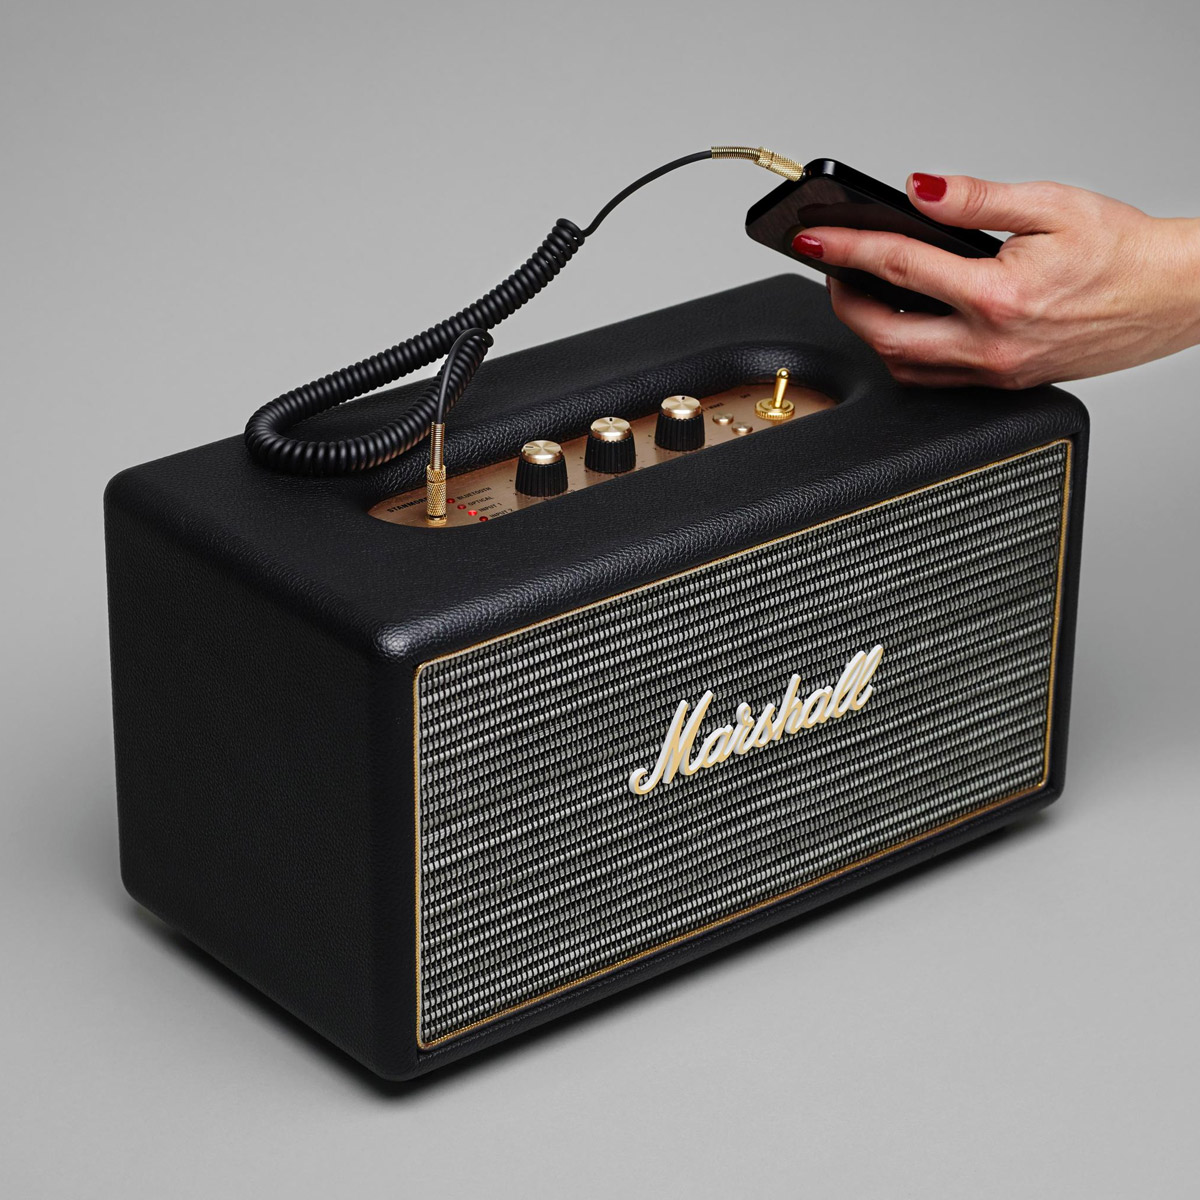 Marshall Stanmore Bluetooth Stereo Speaker Black for sale online  d9bceee1be693